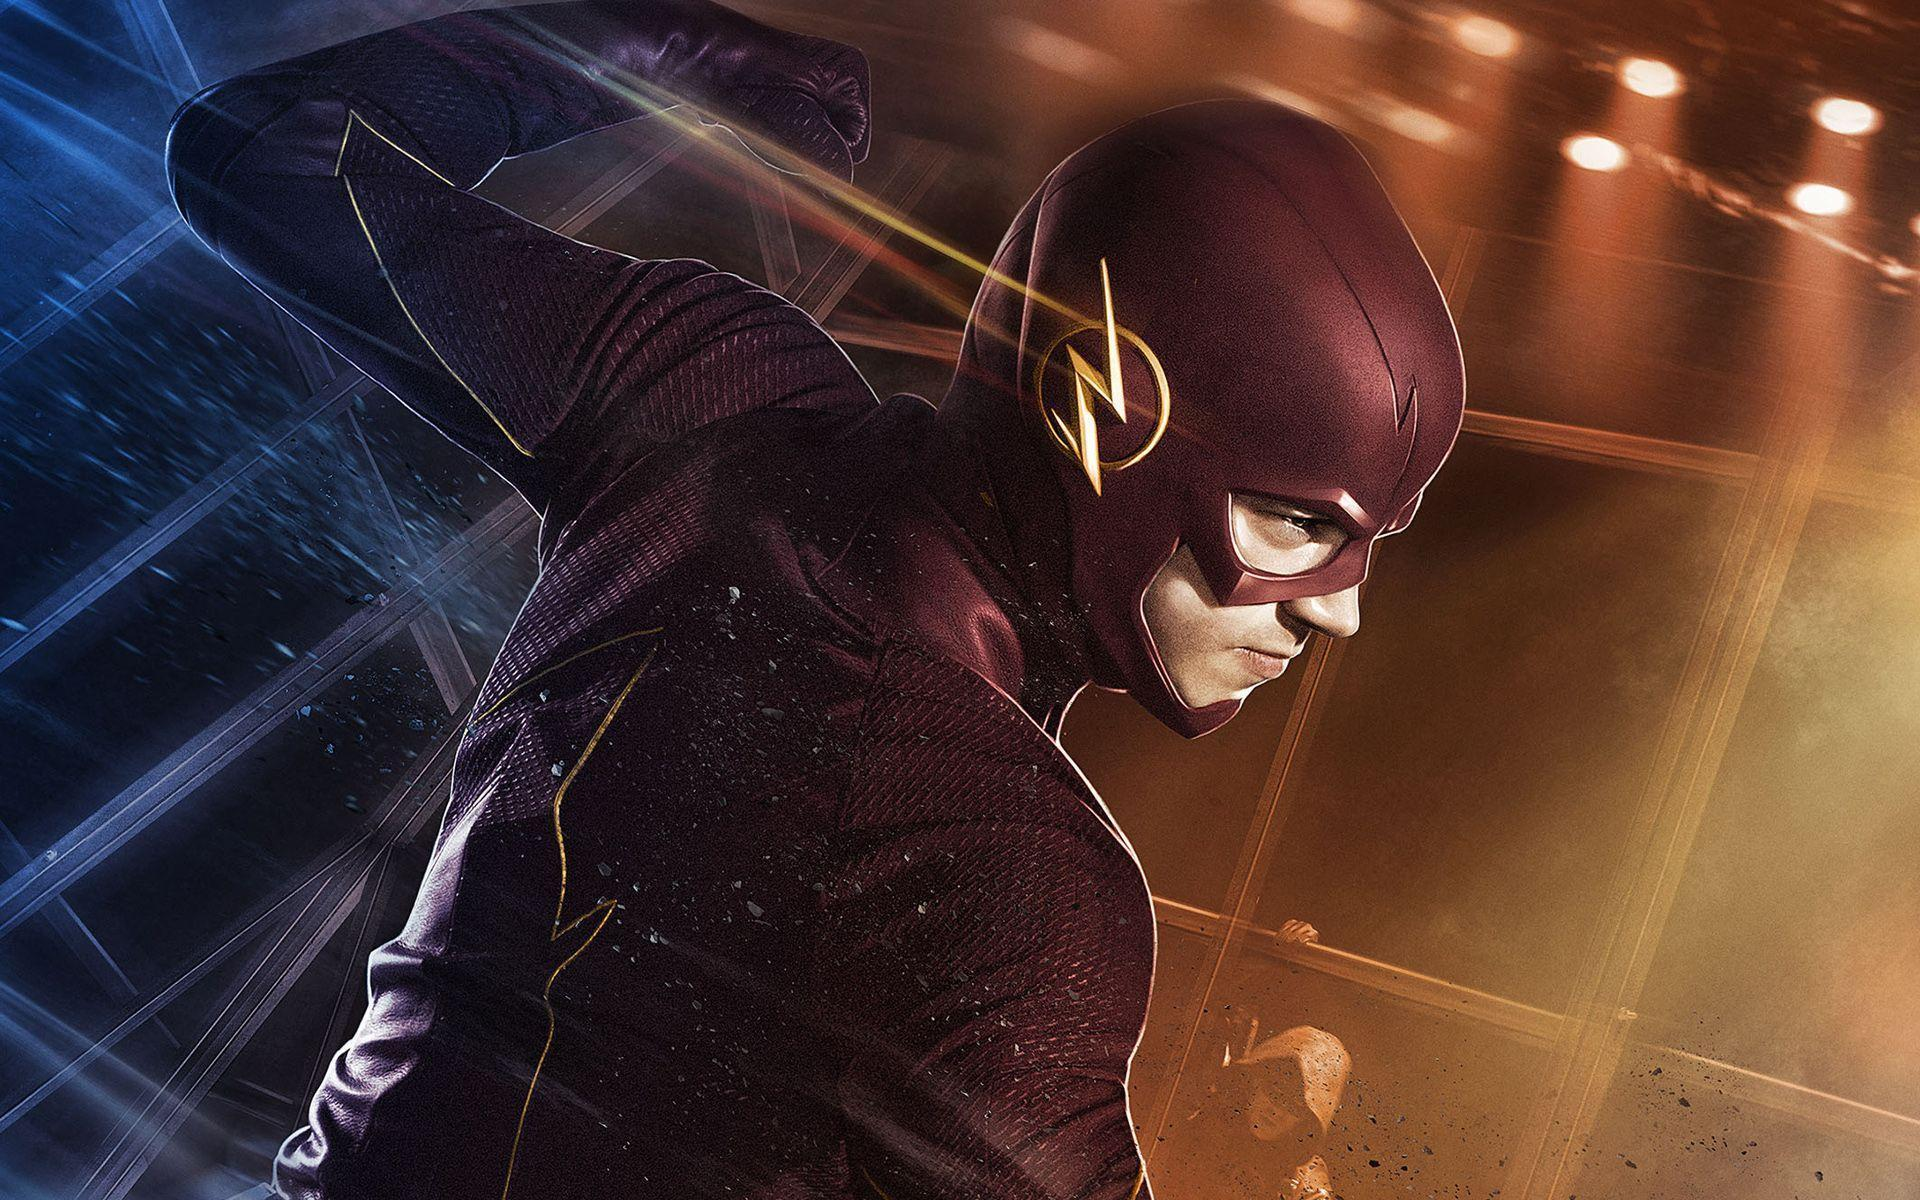 Grant Gustin as Barry Allen The Flash Wallpapers | HD Wallpapers